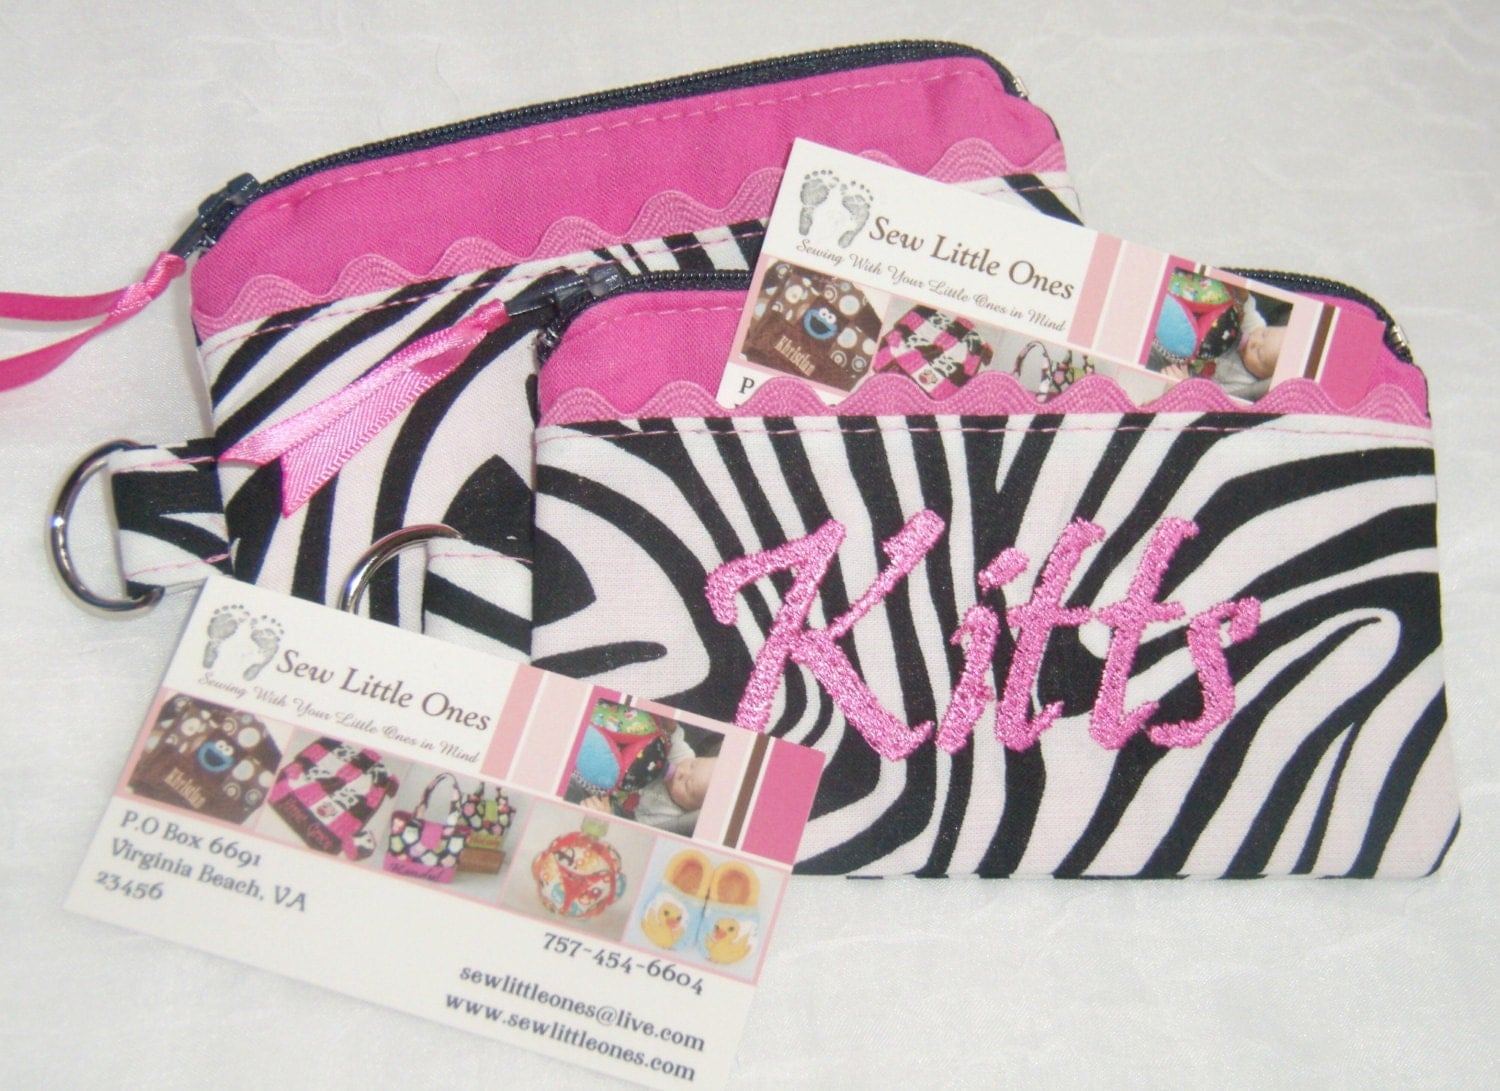 Personalize Hot Pink & Zebra Print Coin Purse - sewlittleones